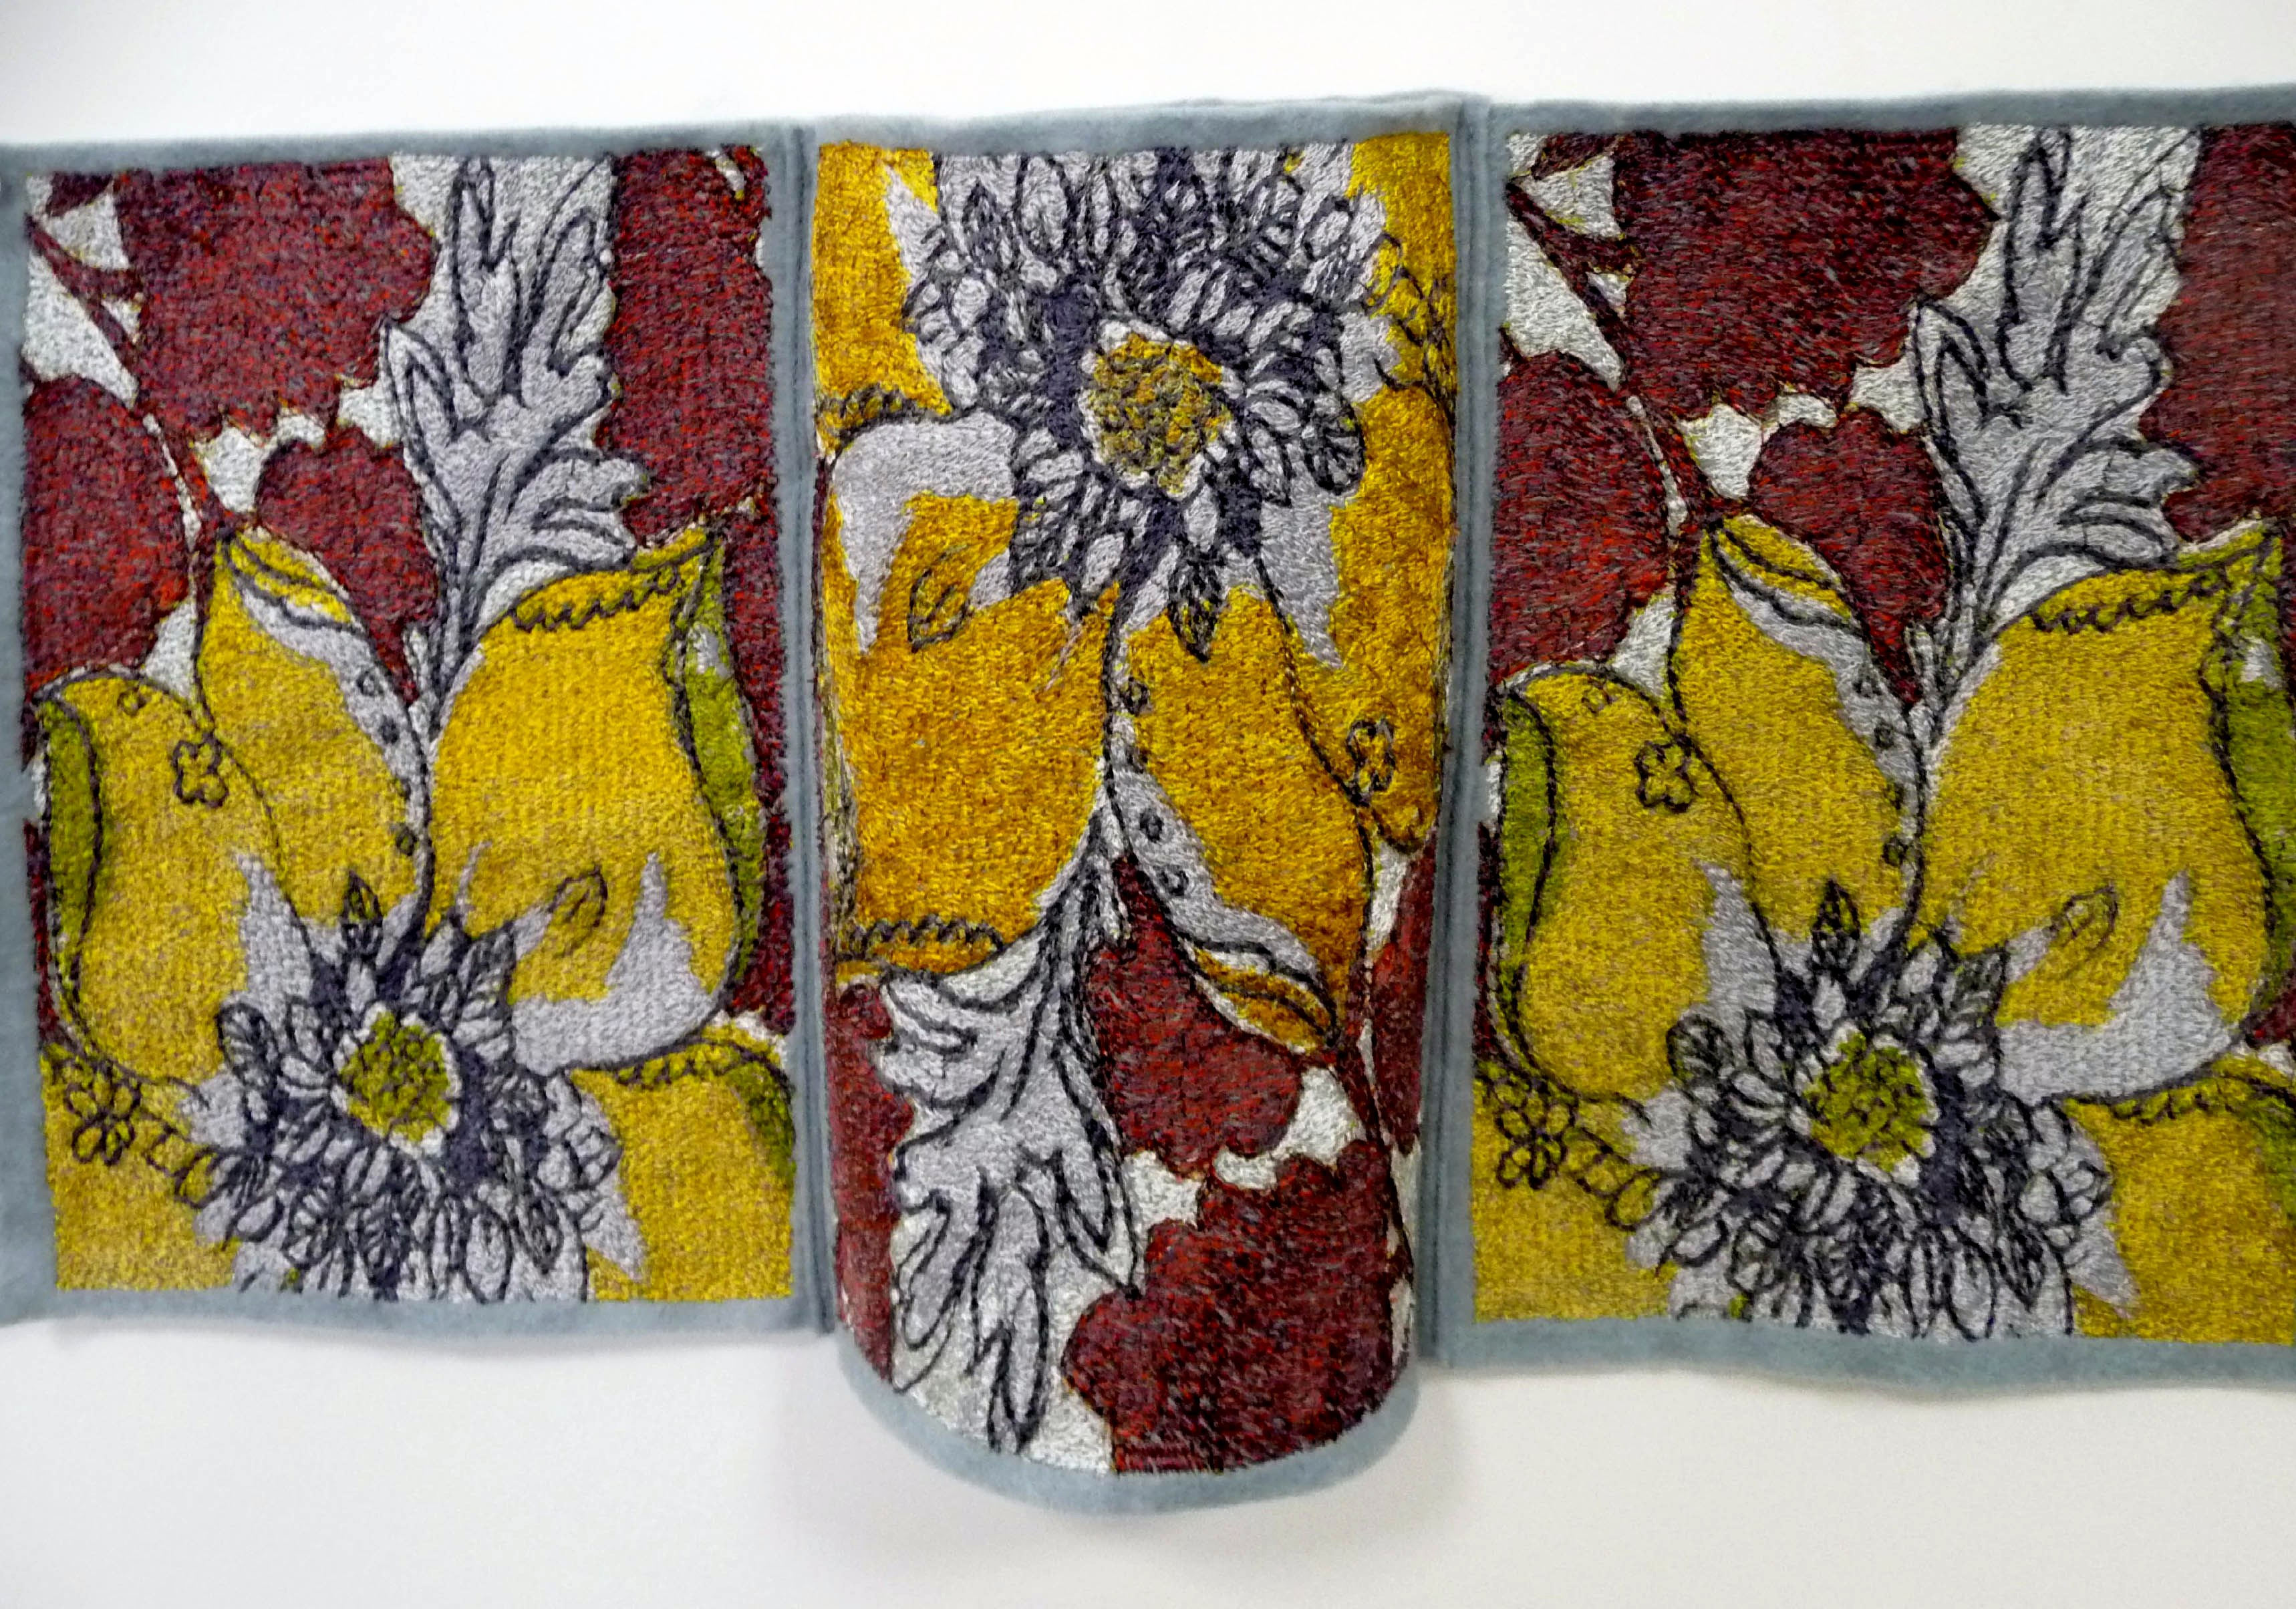 embroidery by Fiona Rainford, based on pattern books in Lancashire Archives, machine embroidery